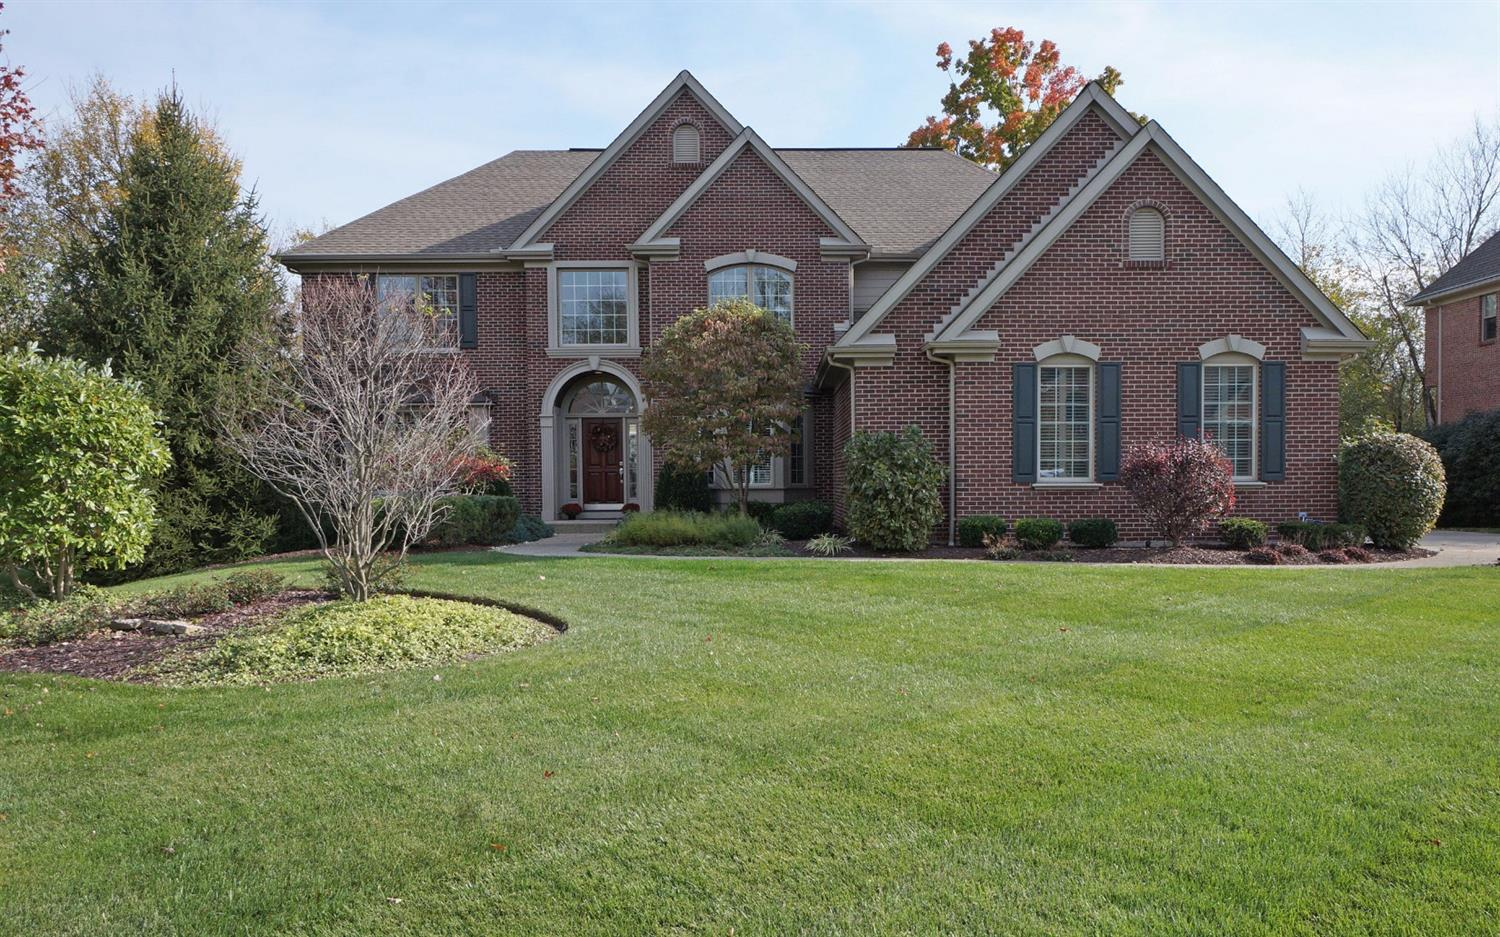 6615 Stableford Dr Miami Twp. (East), OH